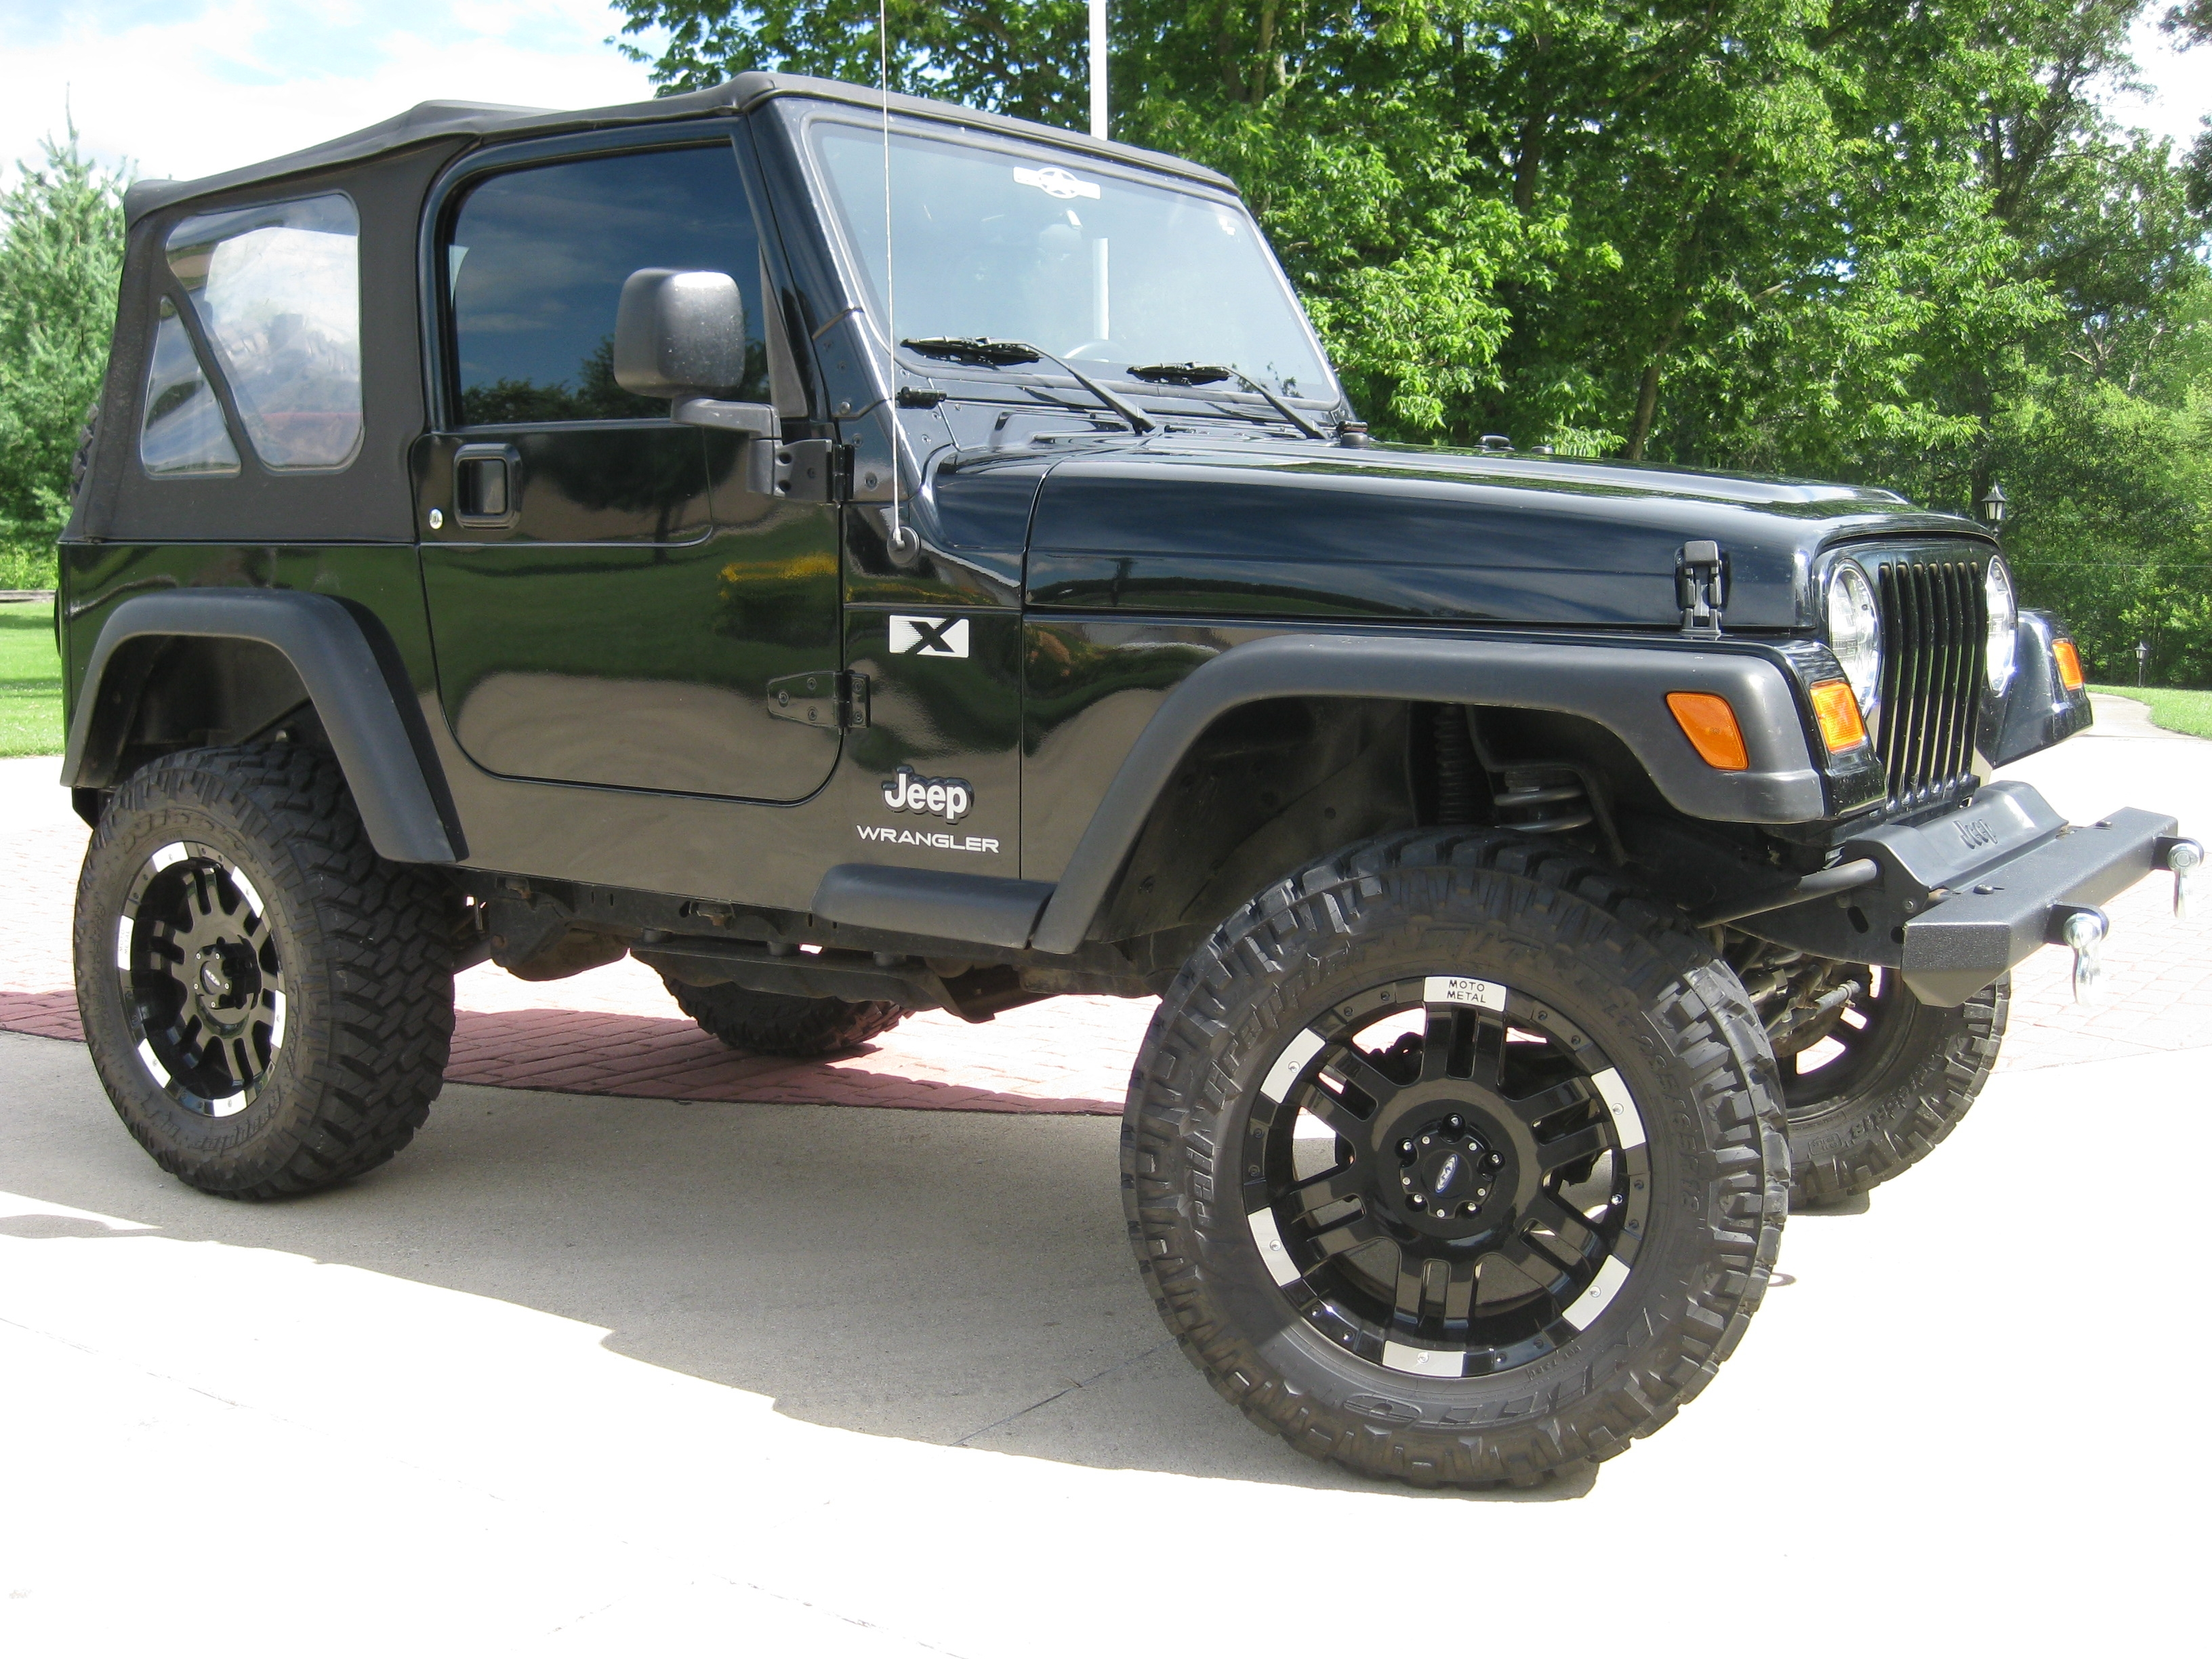 jeepgranger 2003 jeep wranglerx sport utility 2d specs photos modification info at cardomain. Black Bedroom Furniture Sets. Home Design Ideas